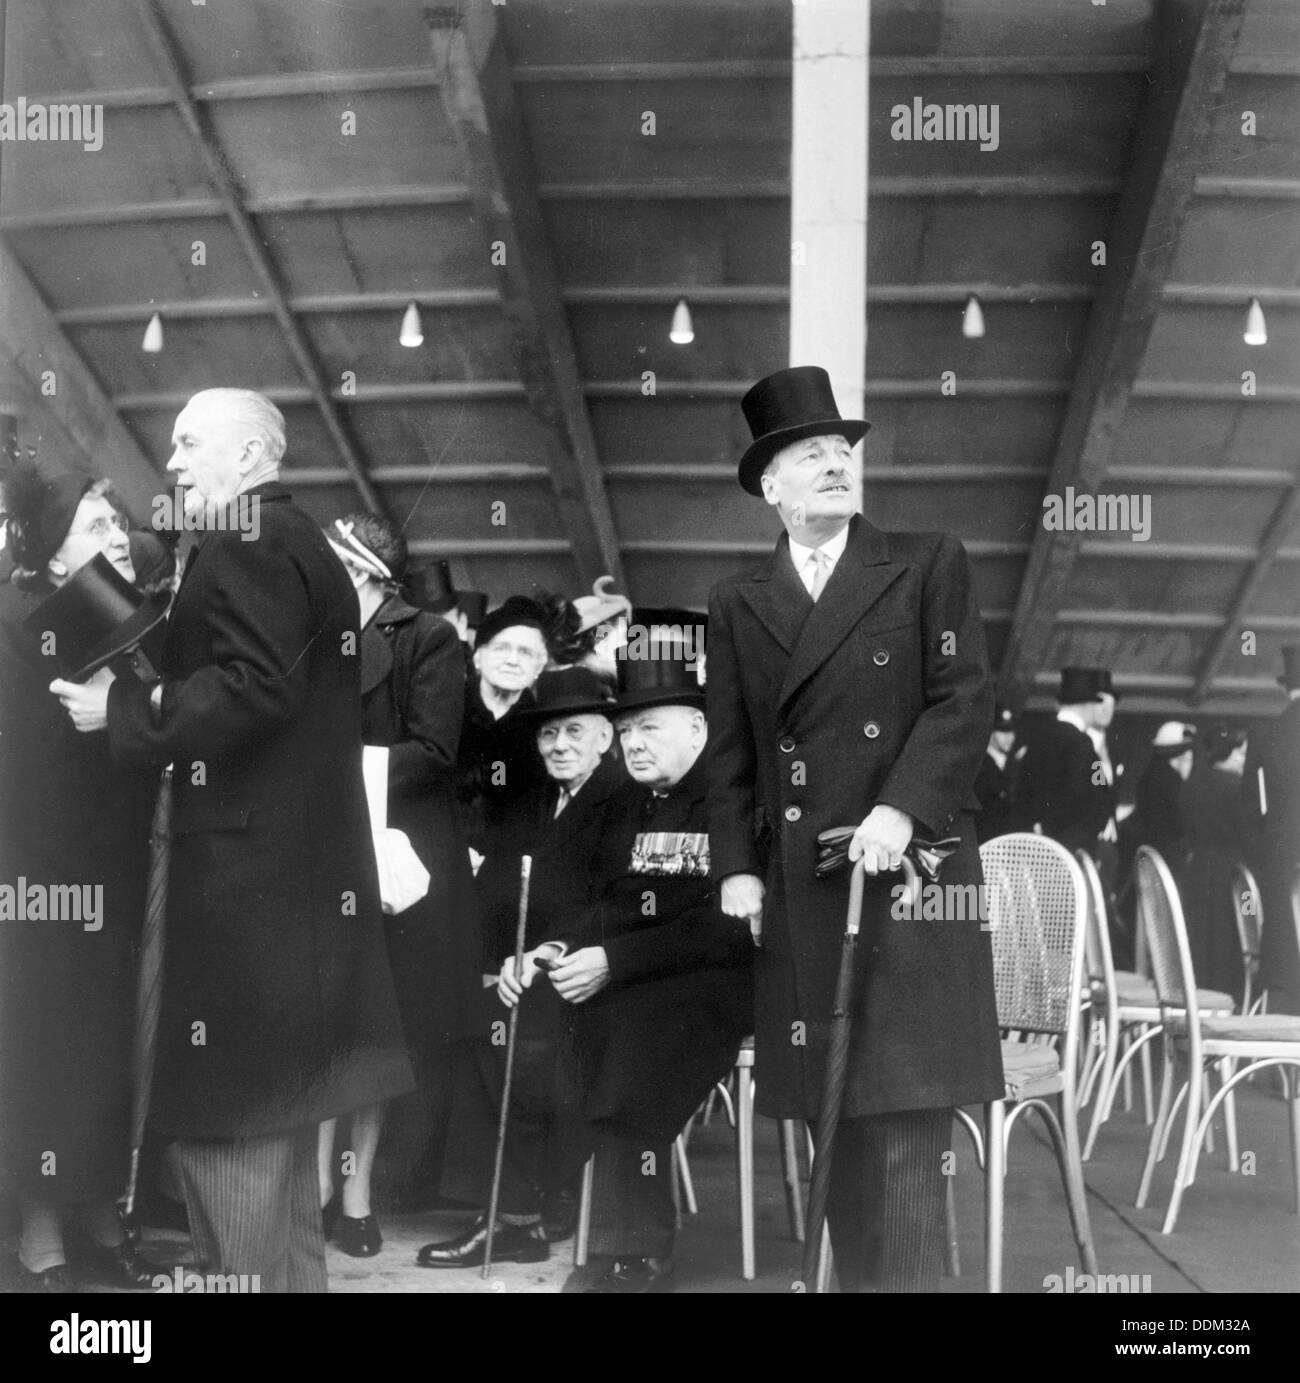 Winston Churchill at the opening of the Festival of Britain, London, 1951. Artist: Henry Grant - Stock Image